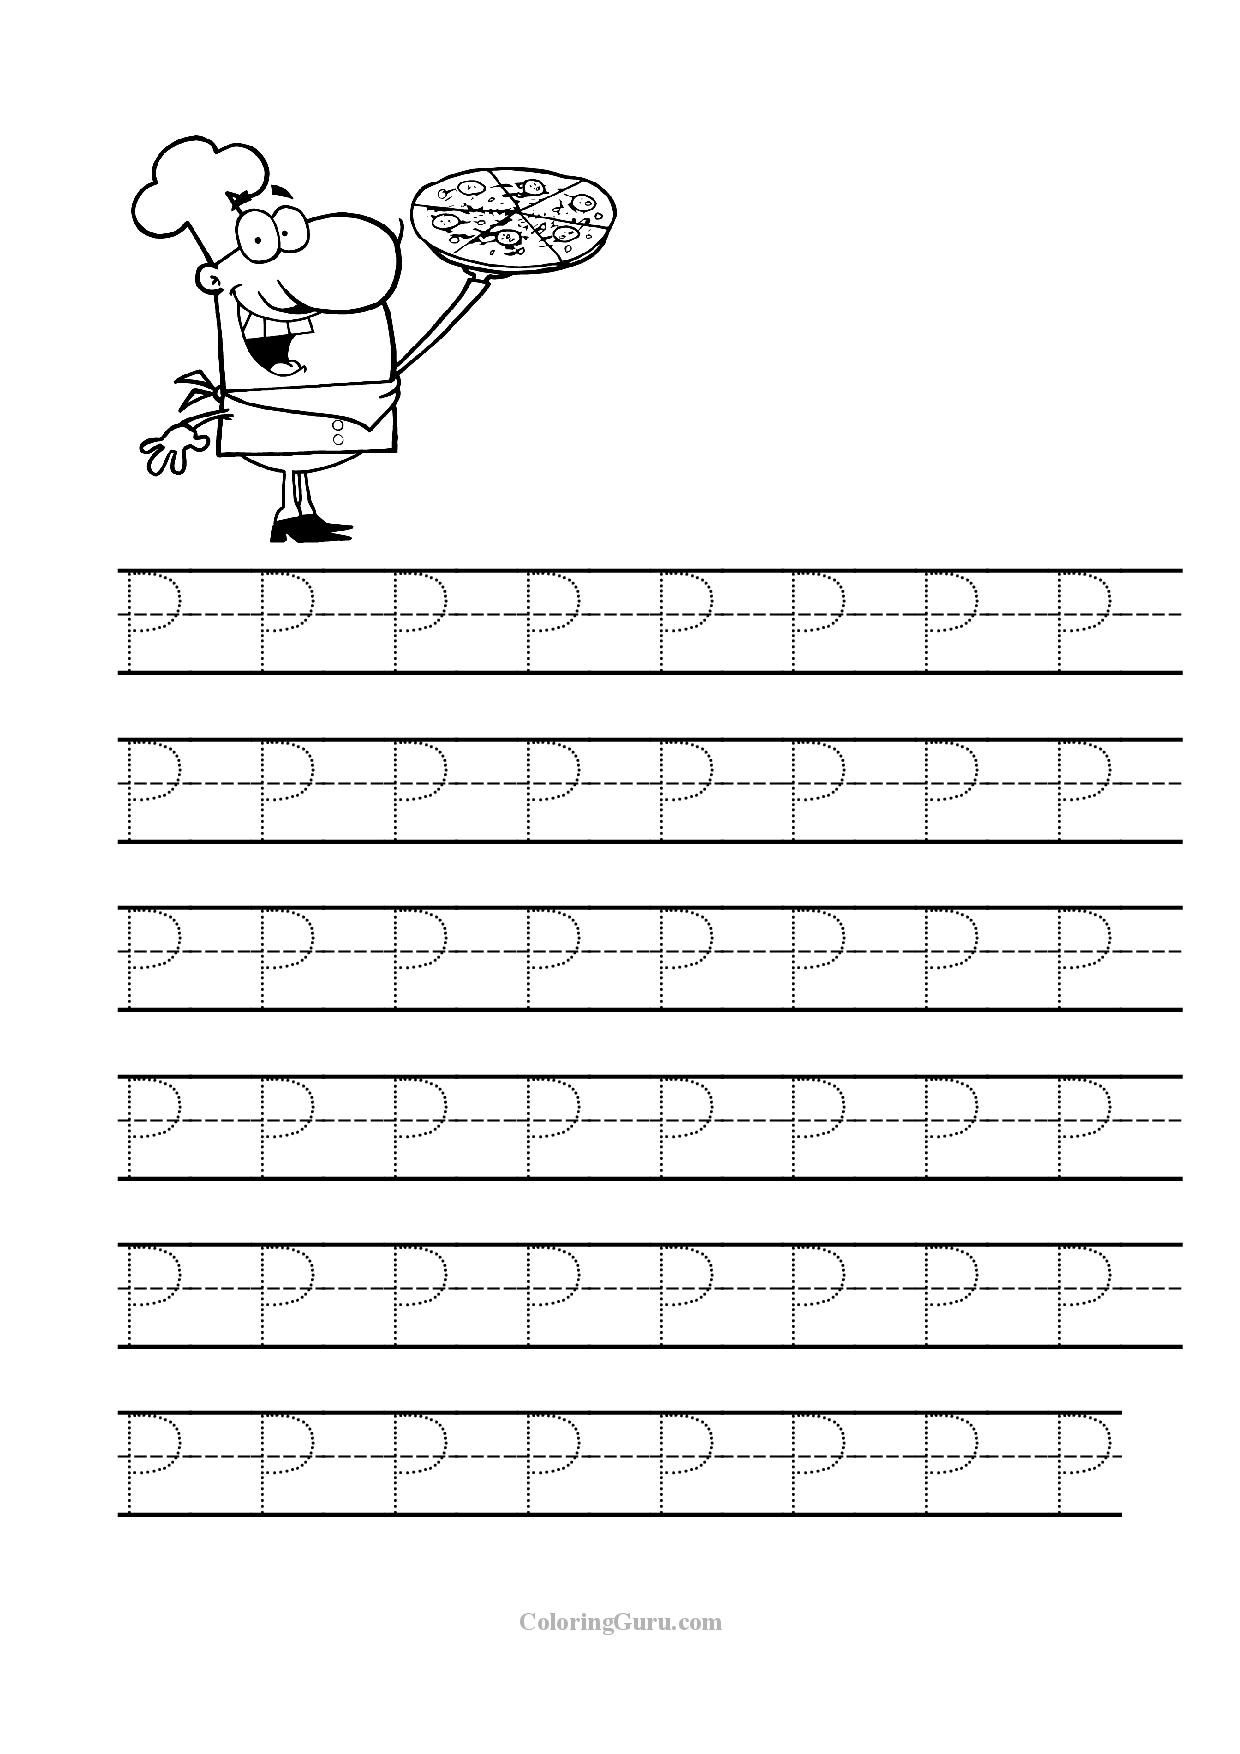 Free Printable Tracing Letter P Worksheets For Preschool   Tracing - Free Printable Preschool Worksheets Tracing Letters